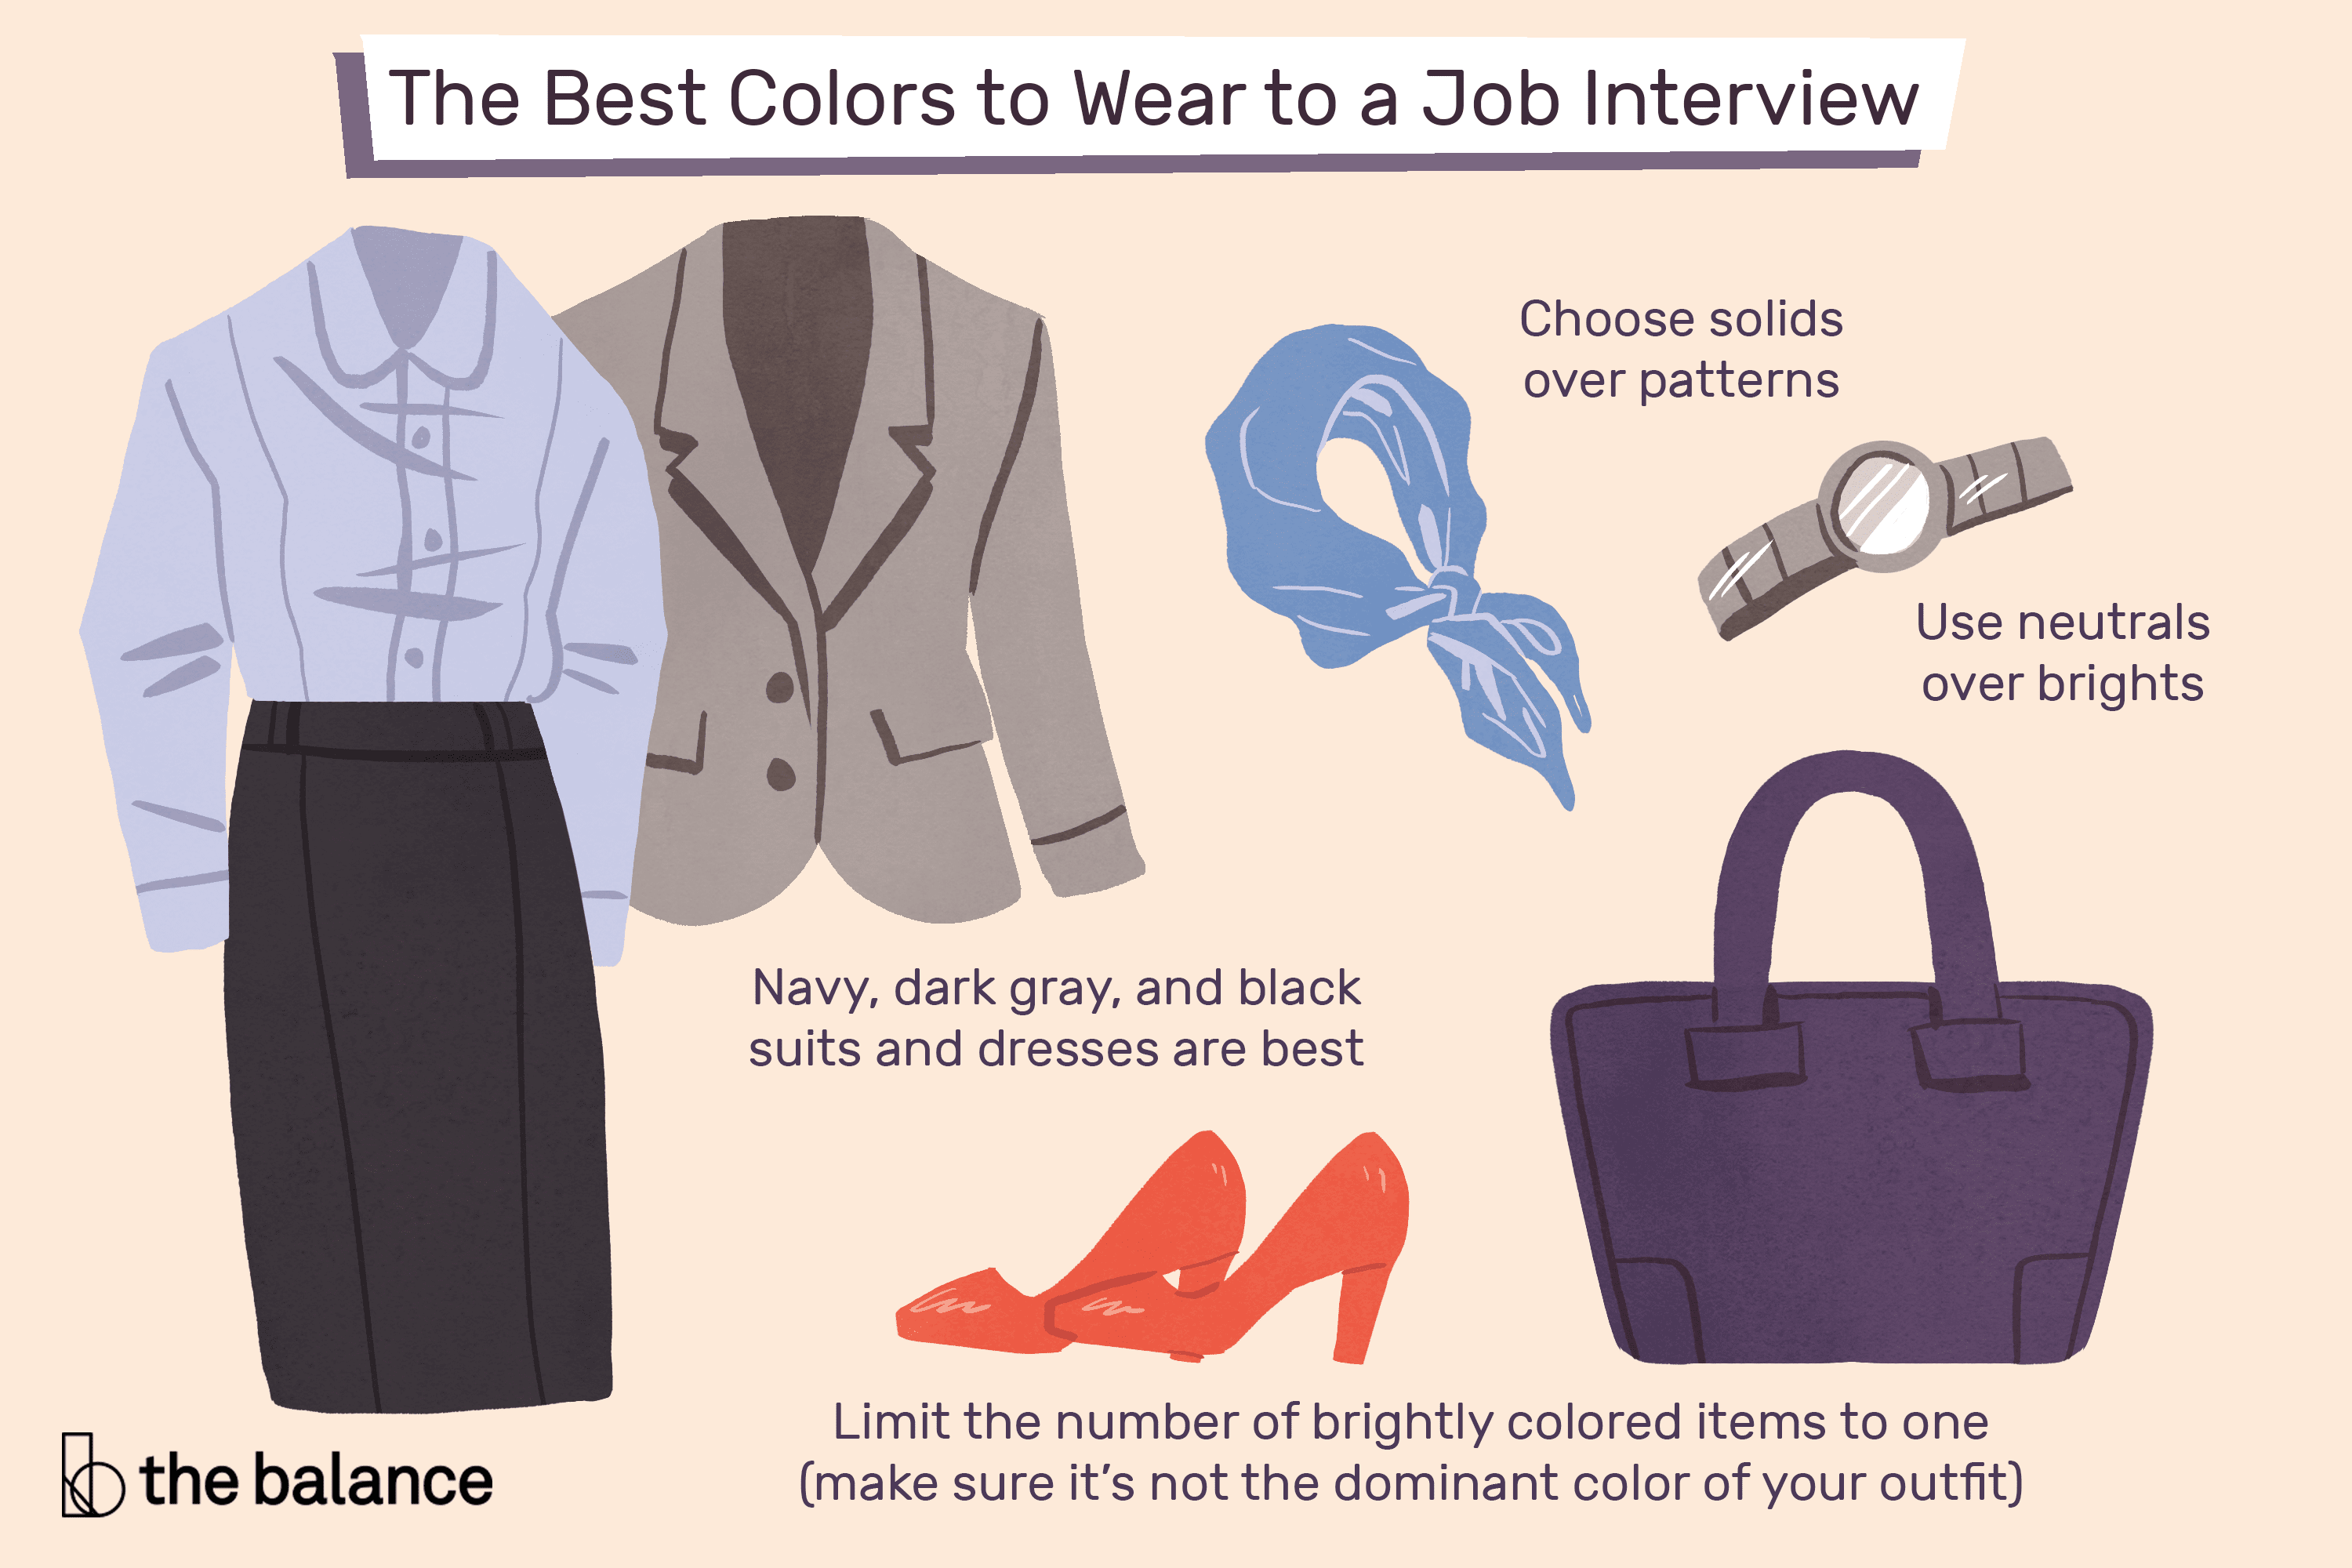 The Best Colors to Wear to a Job Interview